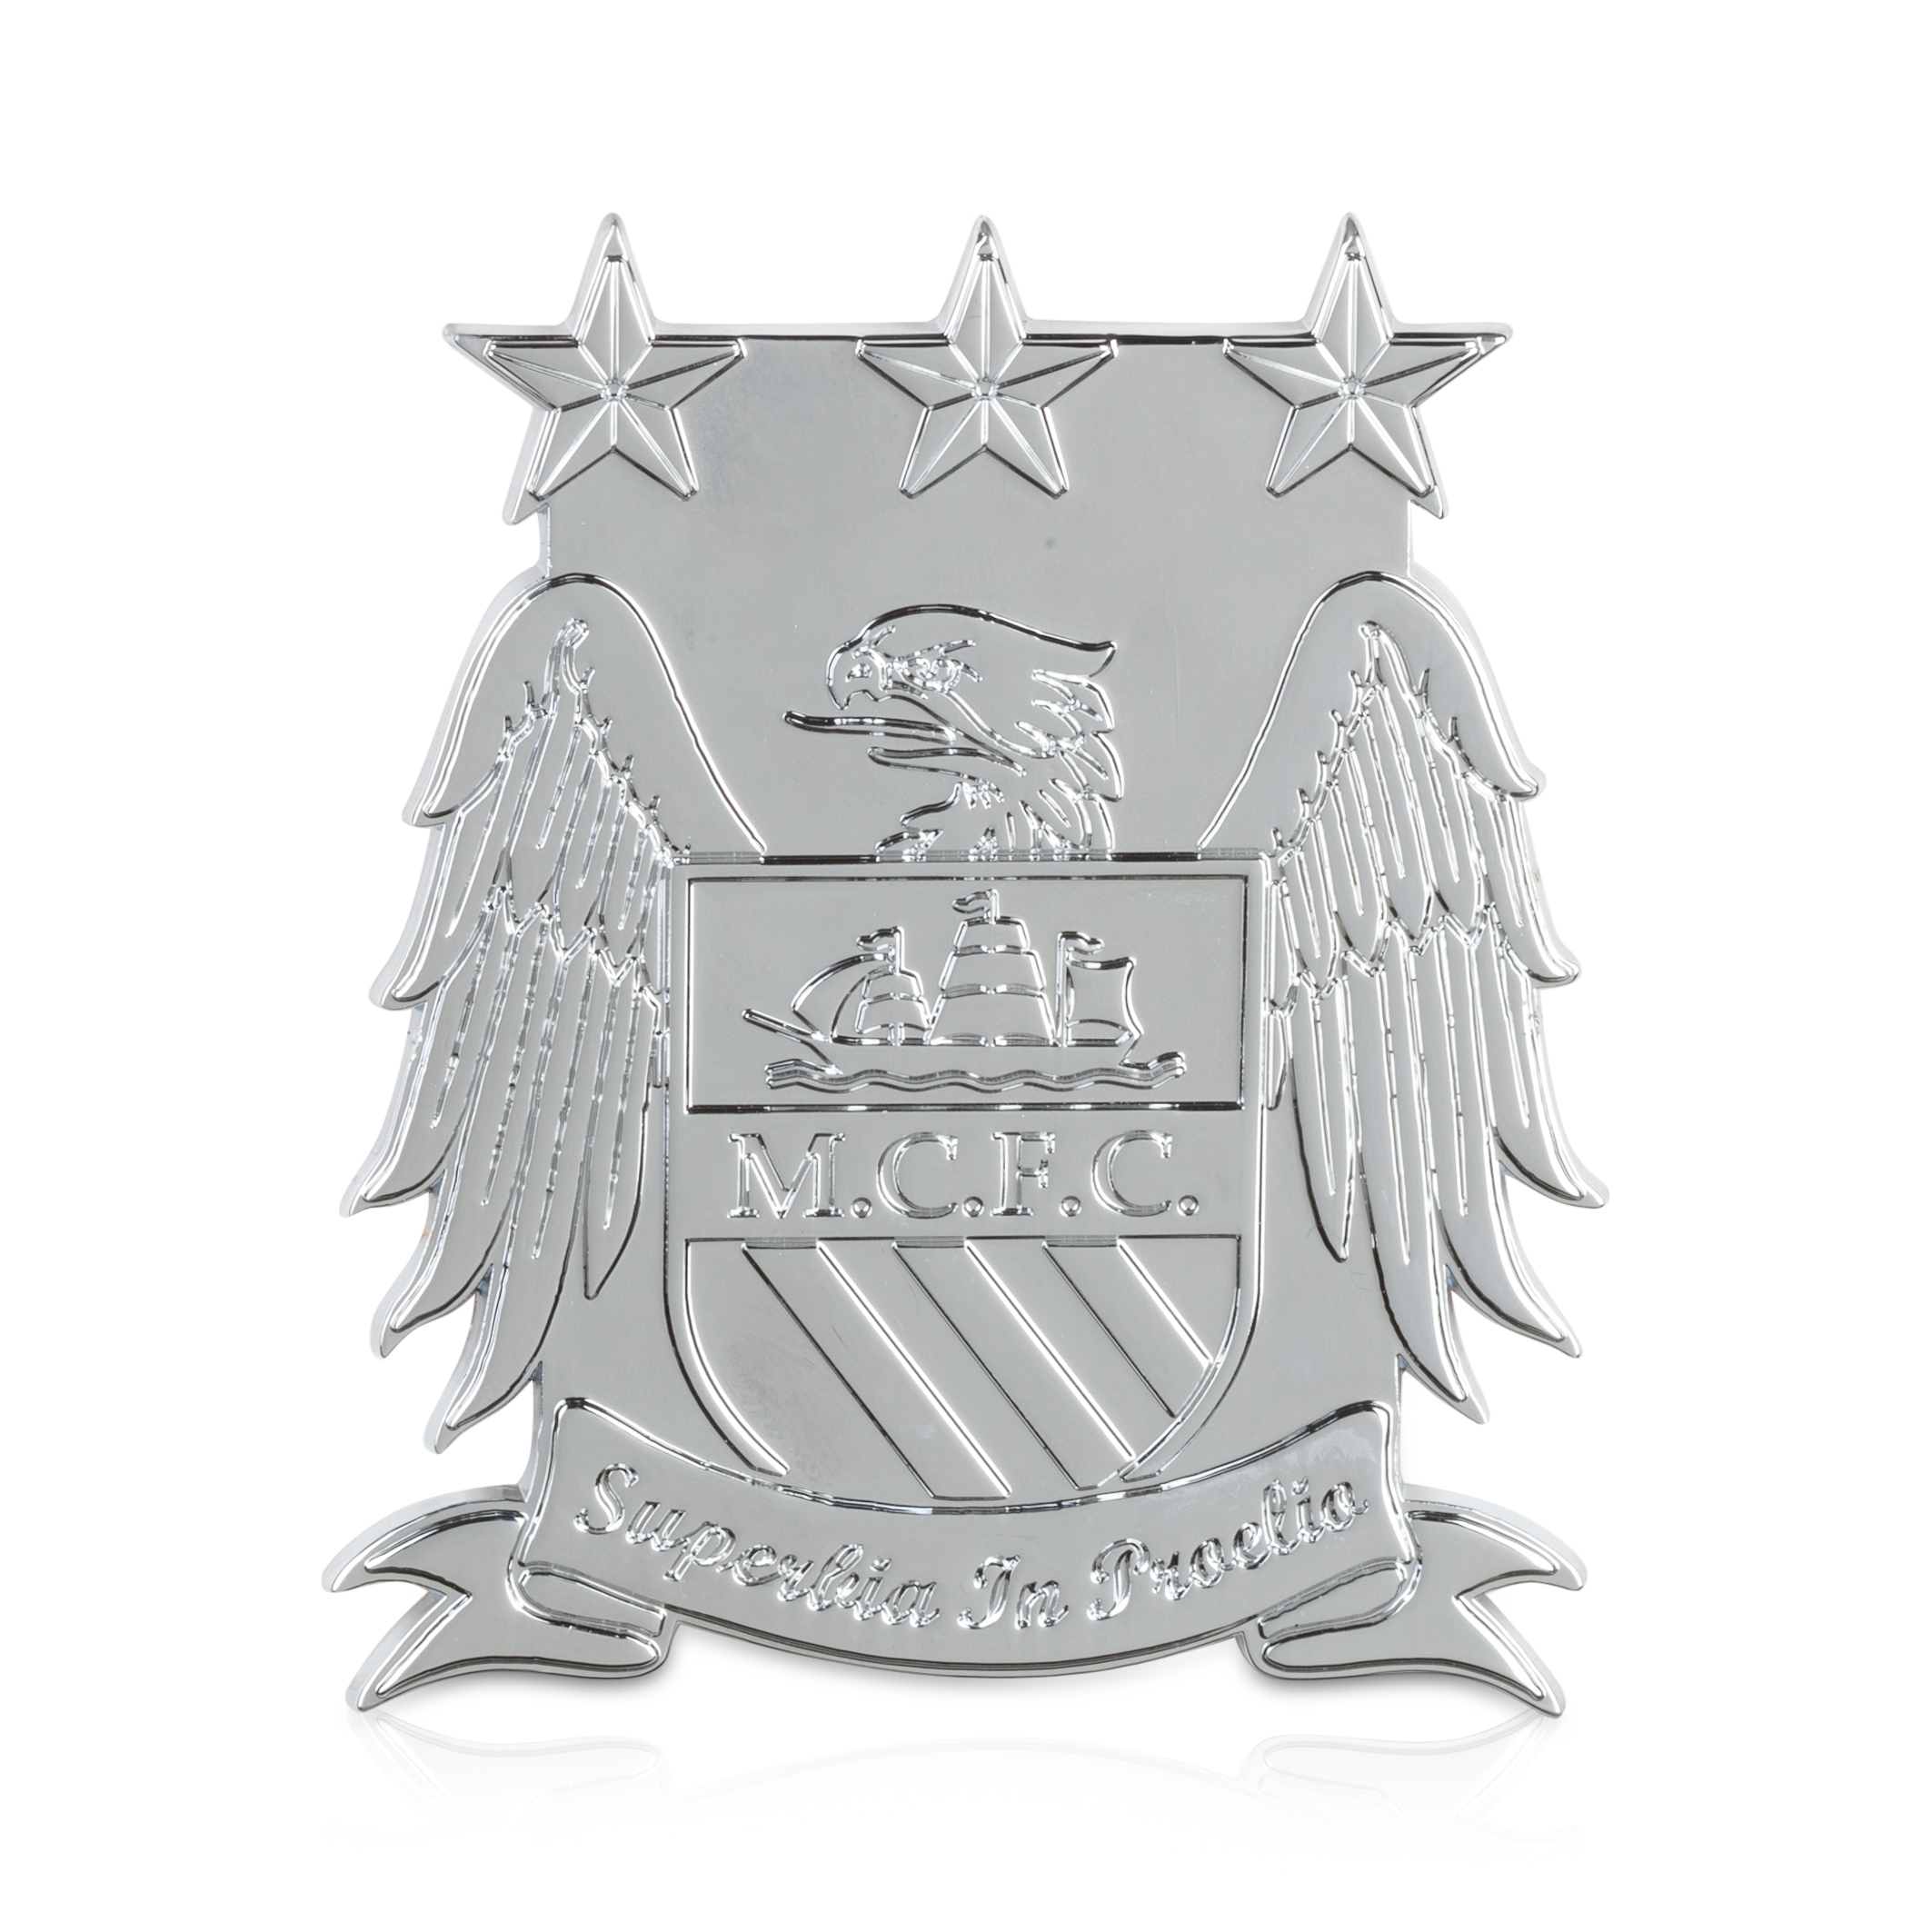 Manchester City Car Badge